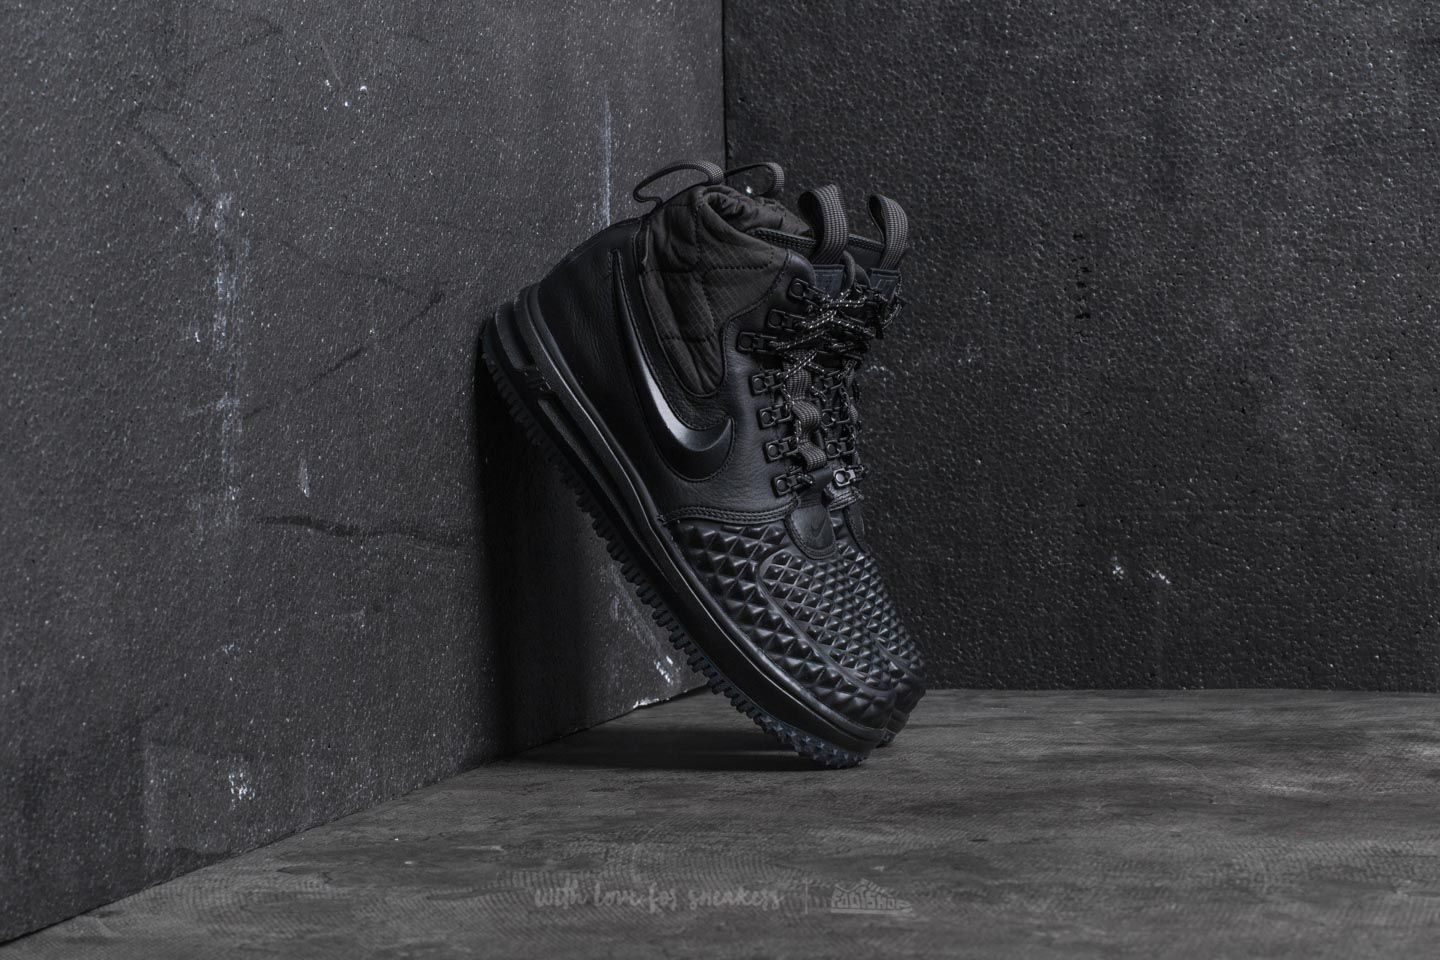 ecf72cc06aad Nike Lunar Force 1 Duckboot ´17 Black  Black-Anthracite